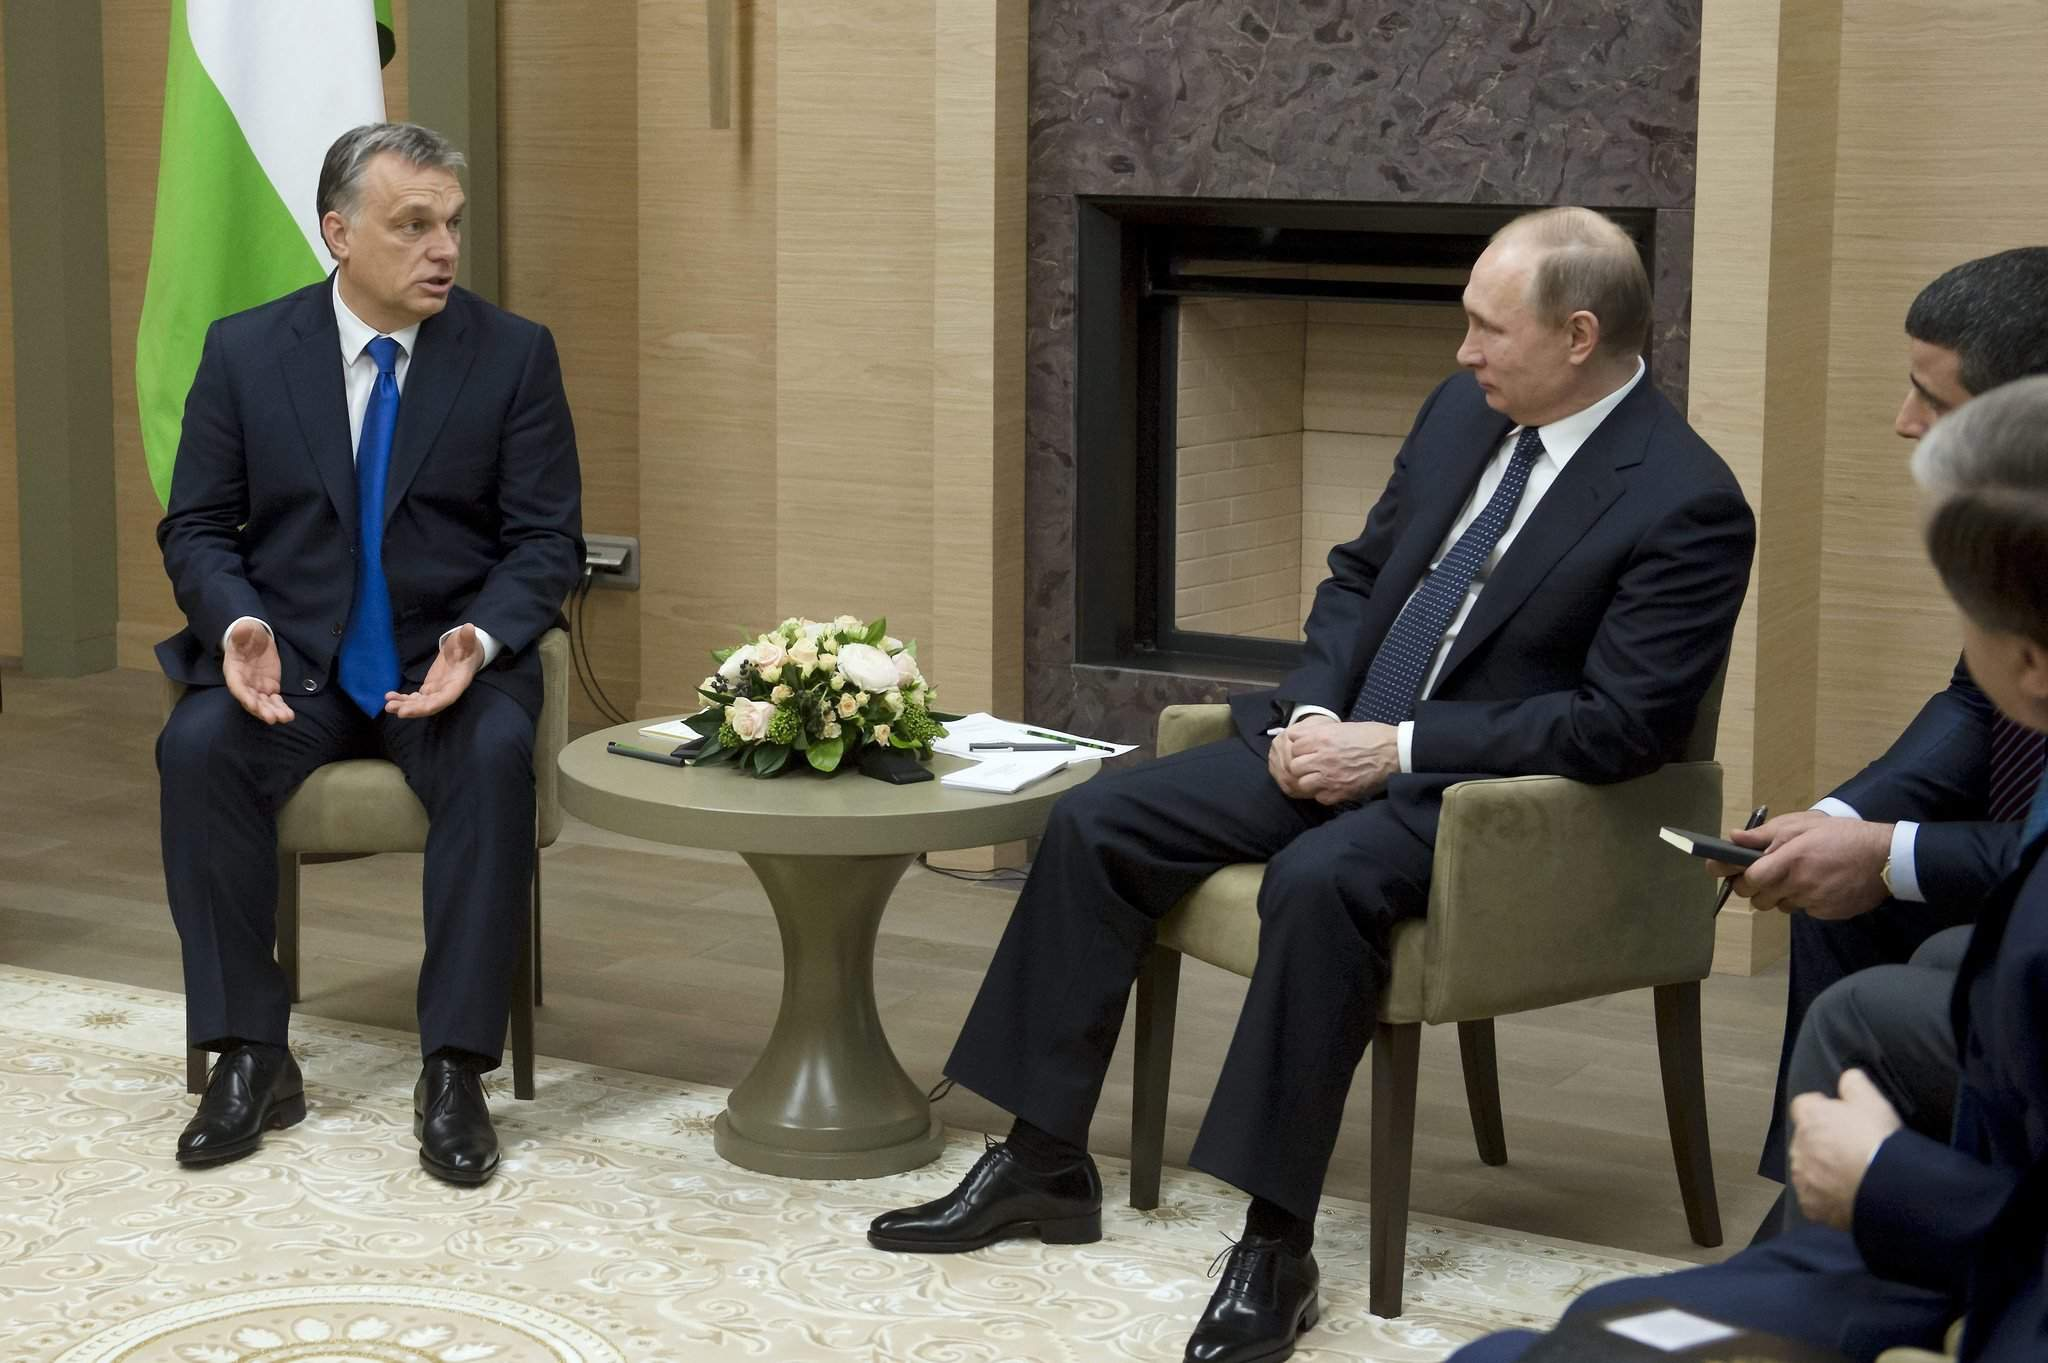 Opposition parties disappointed with Orbán-Putin talks